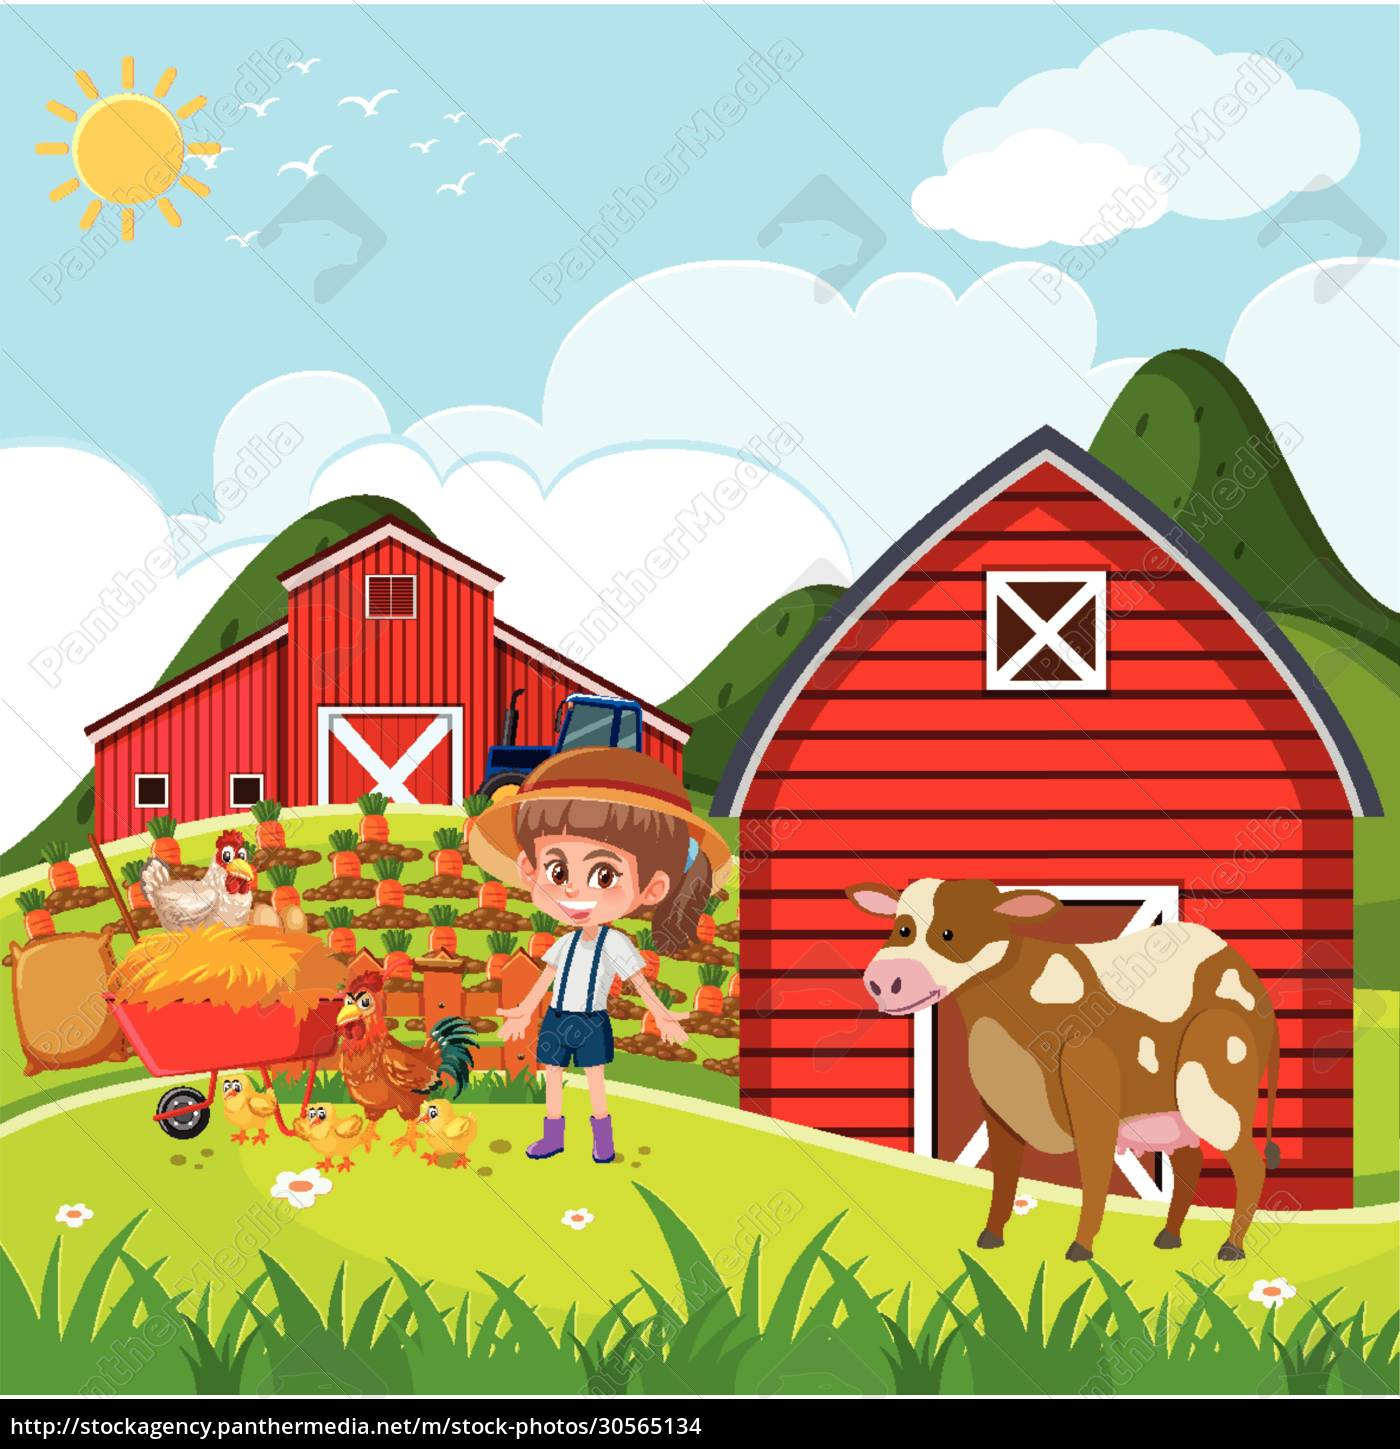 farm, scene, with, girl, and, chickens - 30565134